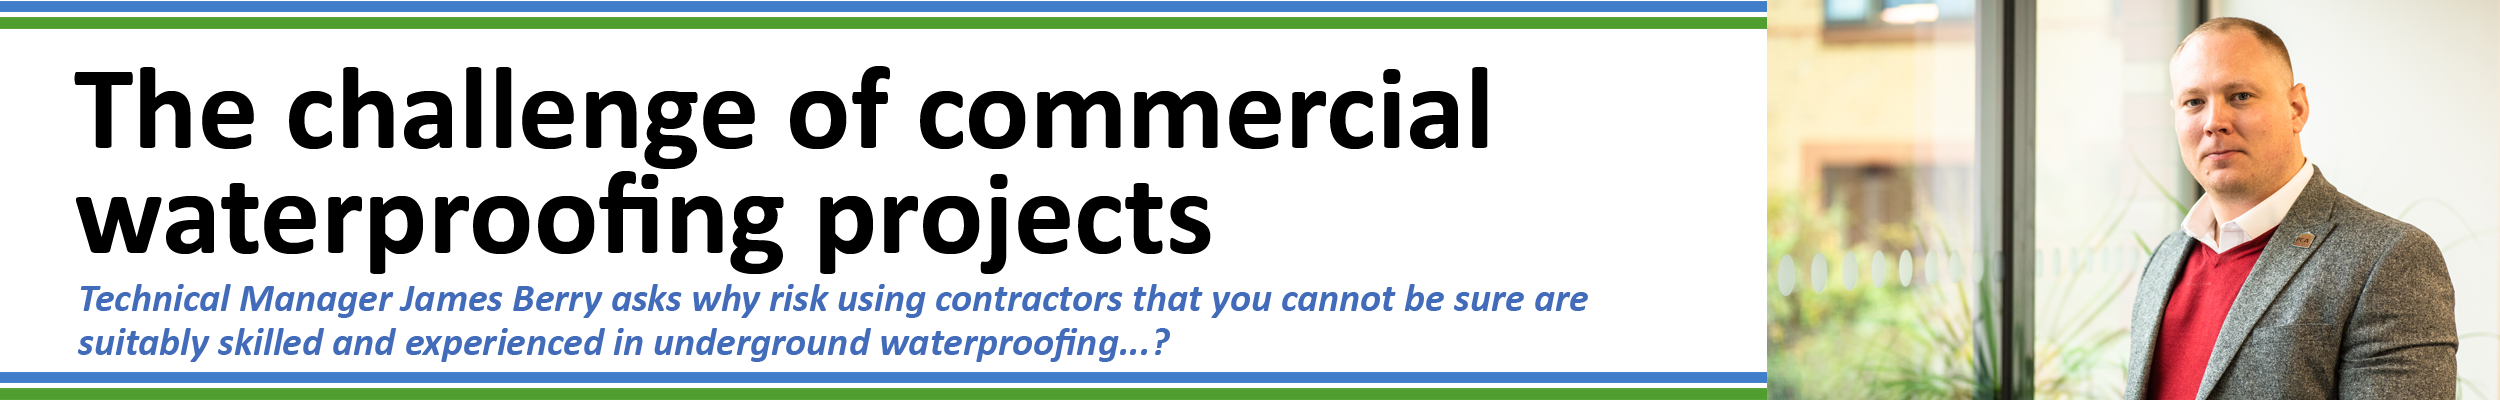 James Berry - The challenge of commercial waterproofing projects